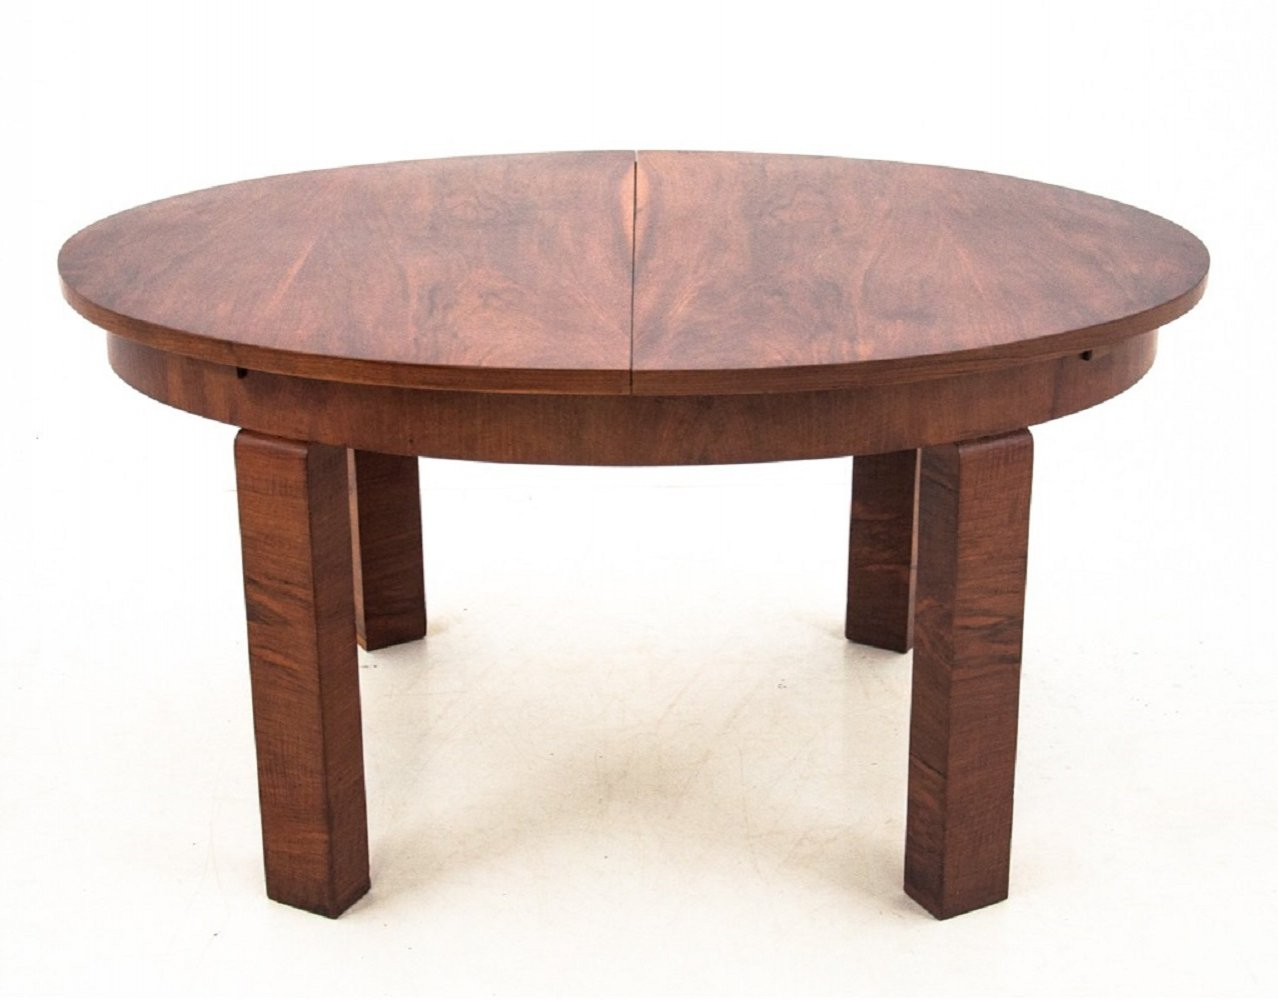 Art Deco Dining Table, 1930s